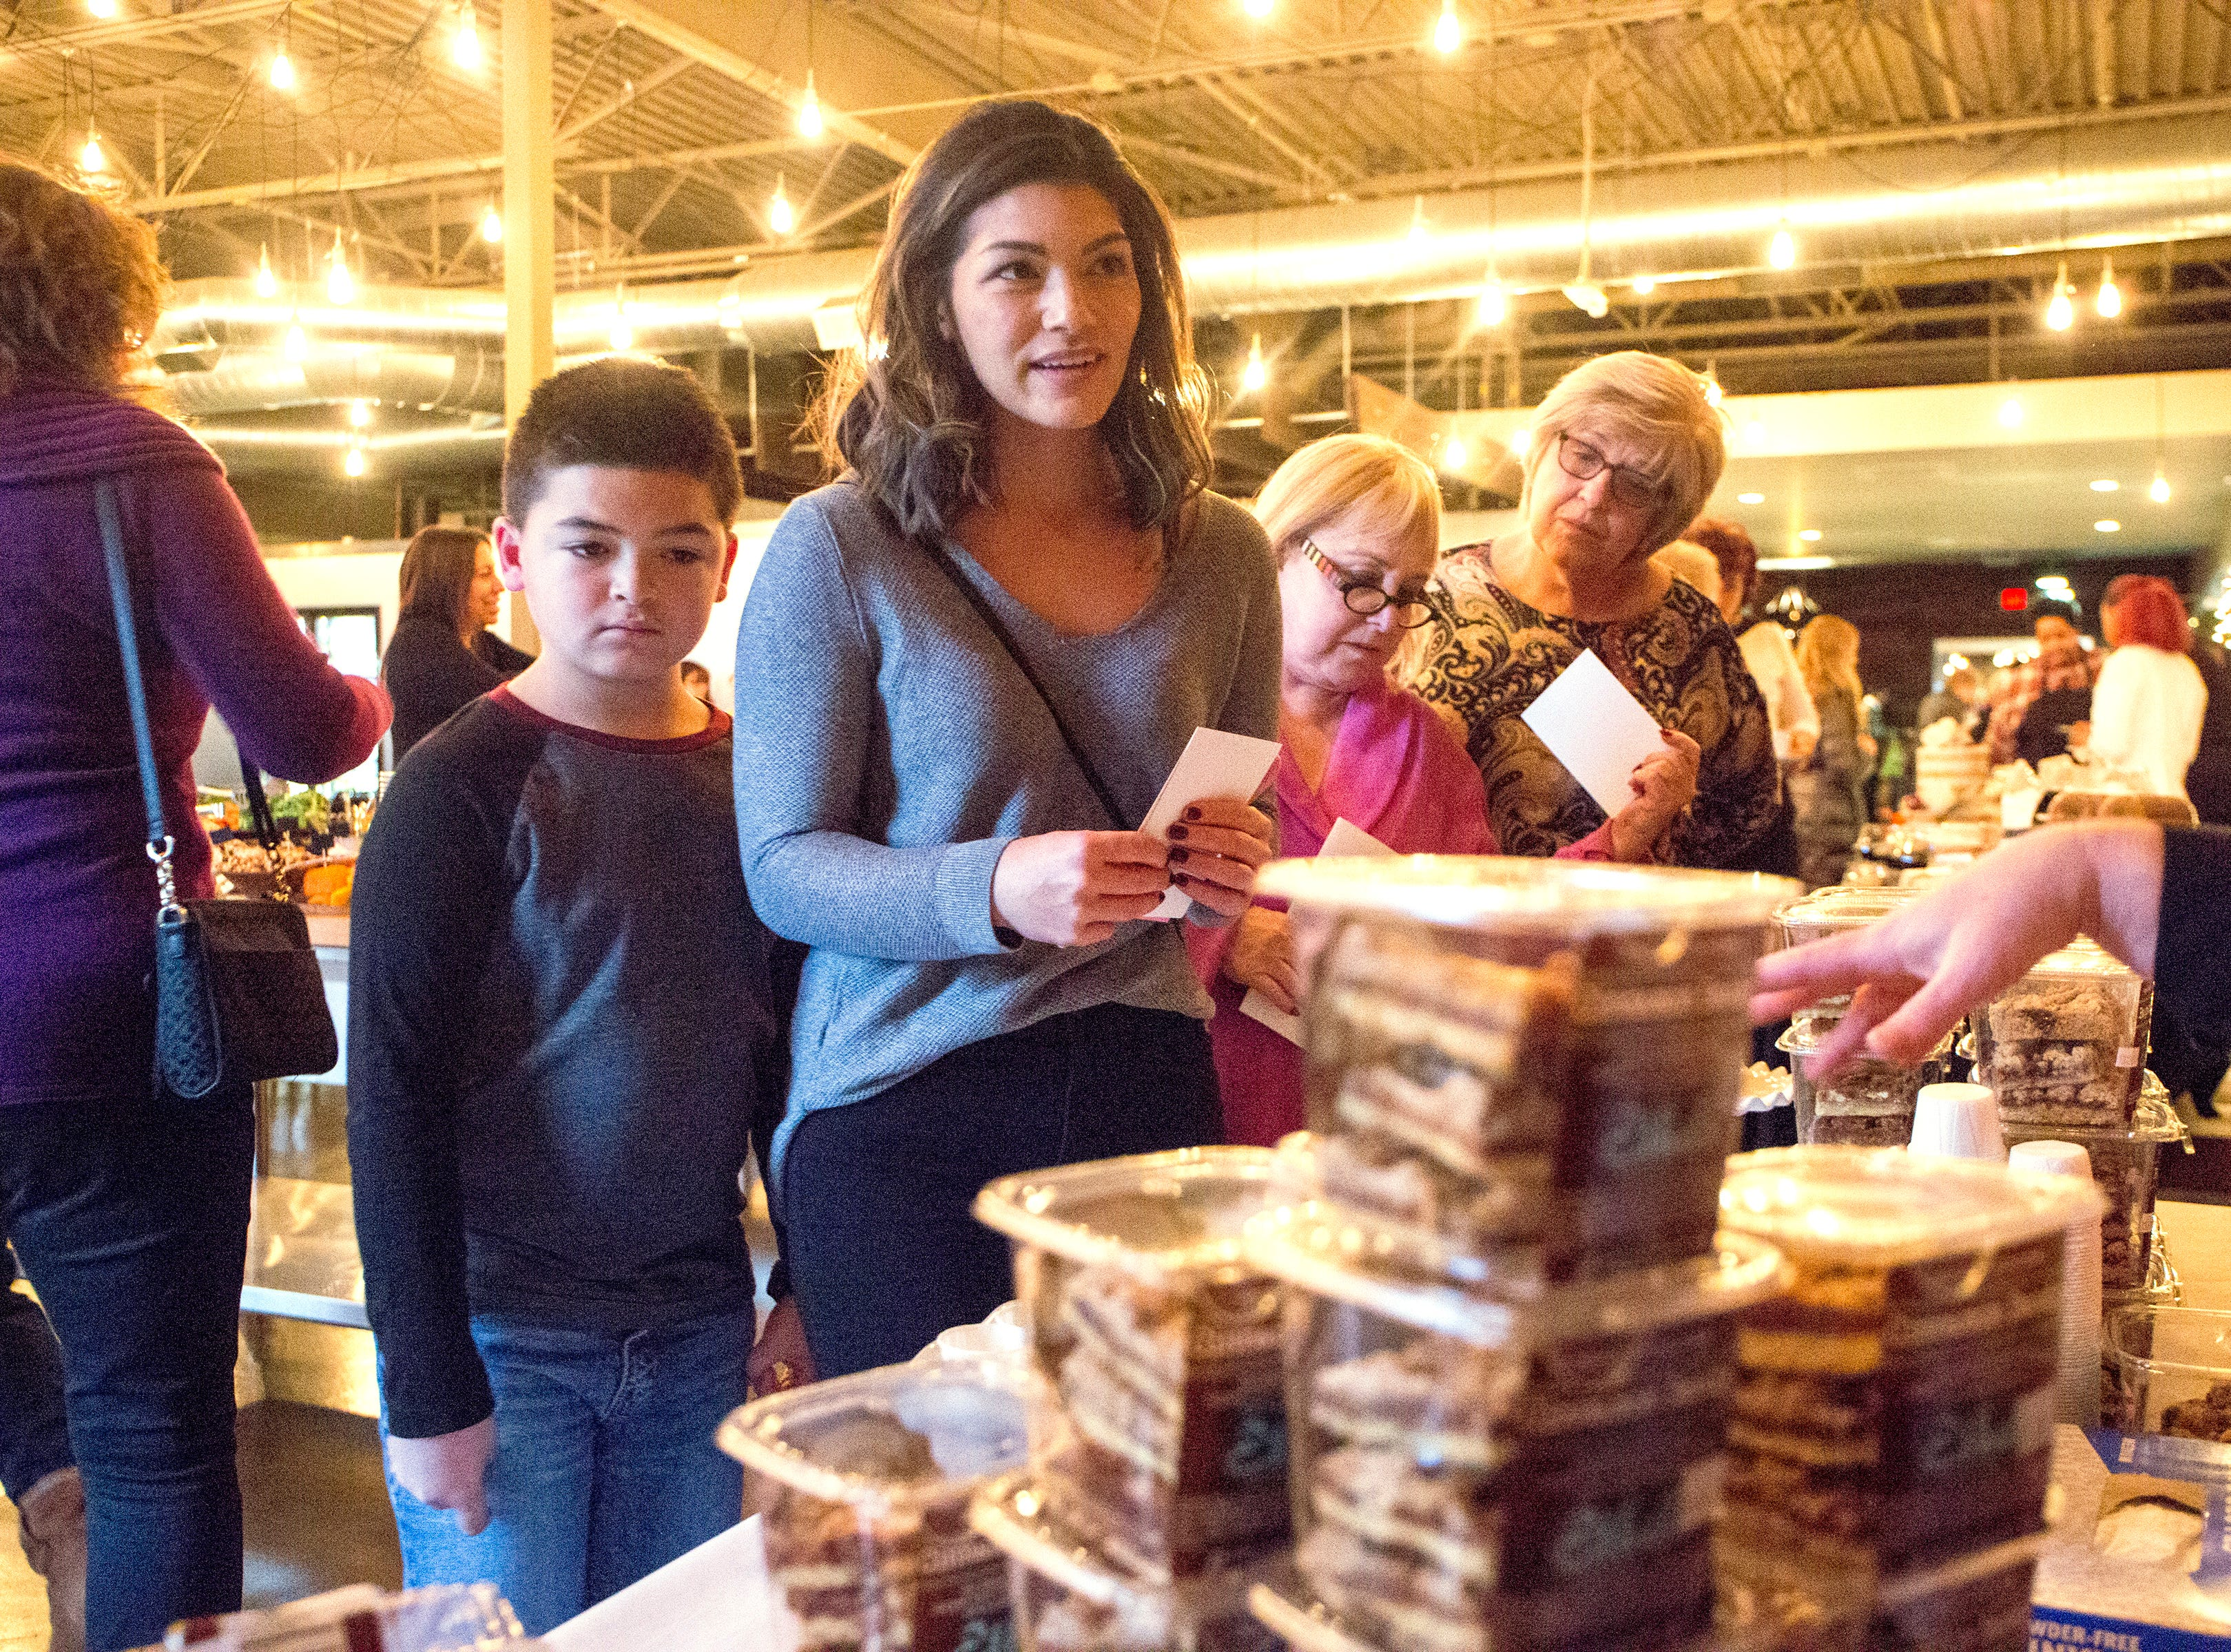 From left, Manny Velazquez, 8 and Aerin Velazquez, 34 of Sterling Heights sample baked goods at the Ethel's Baking Co. display during the Whisked event at the Great Lakes Culinary Center in Southfield, Mich., Sunday, Nov. 18, 2018.